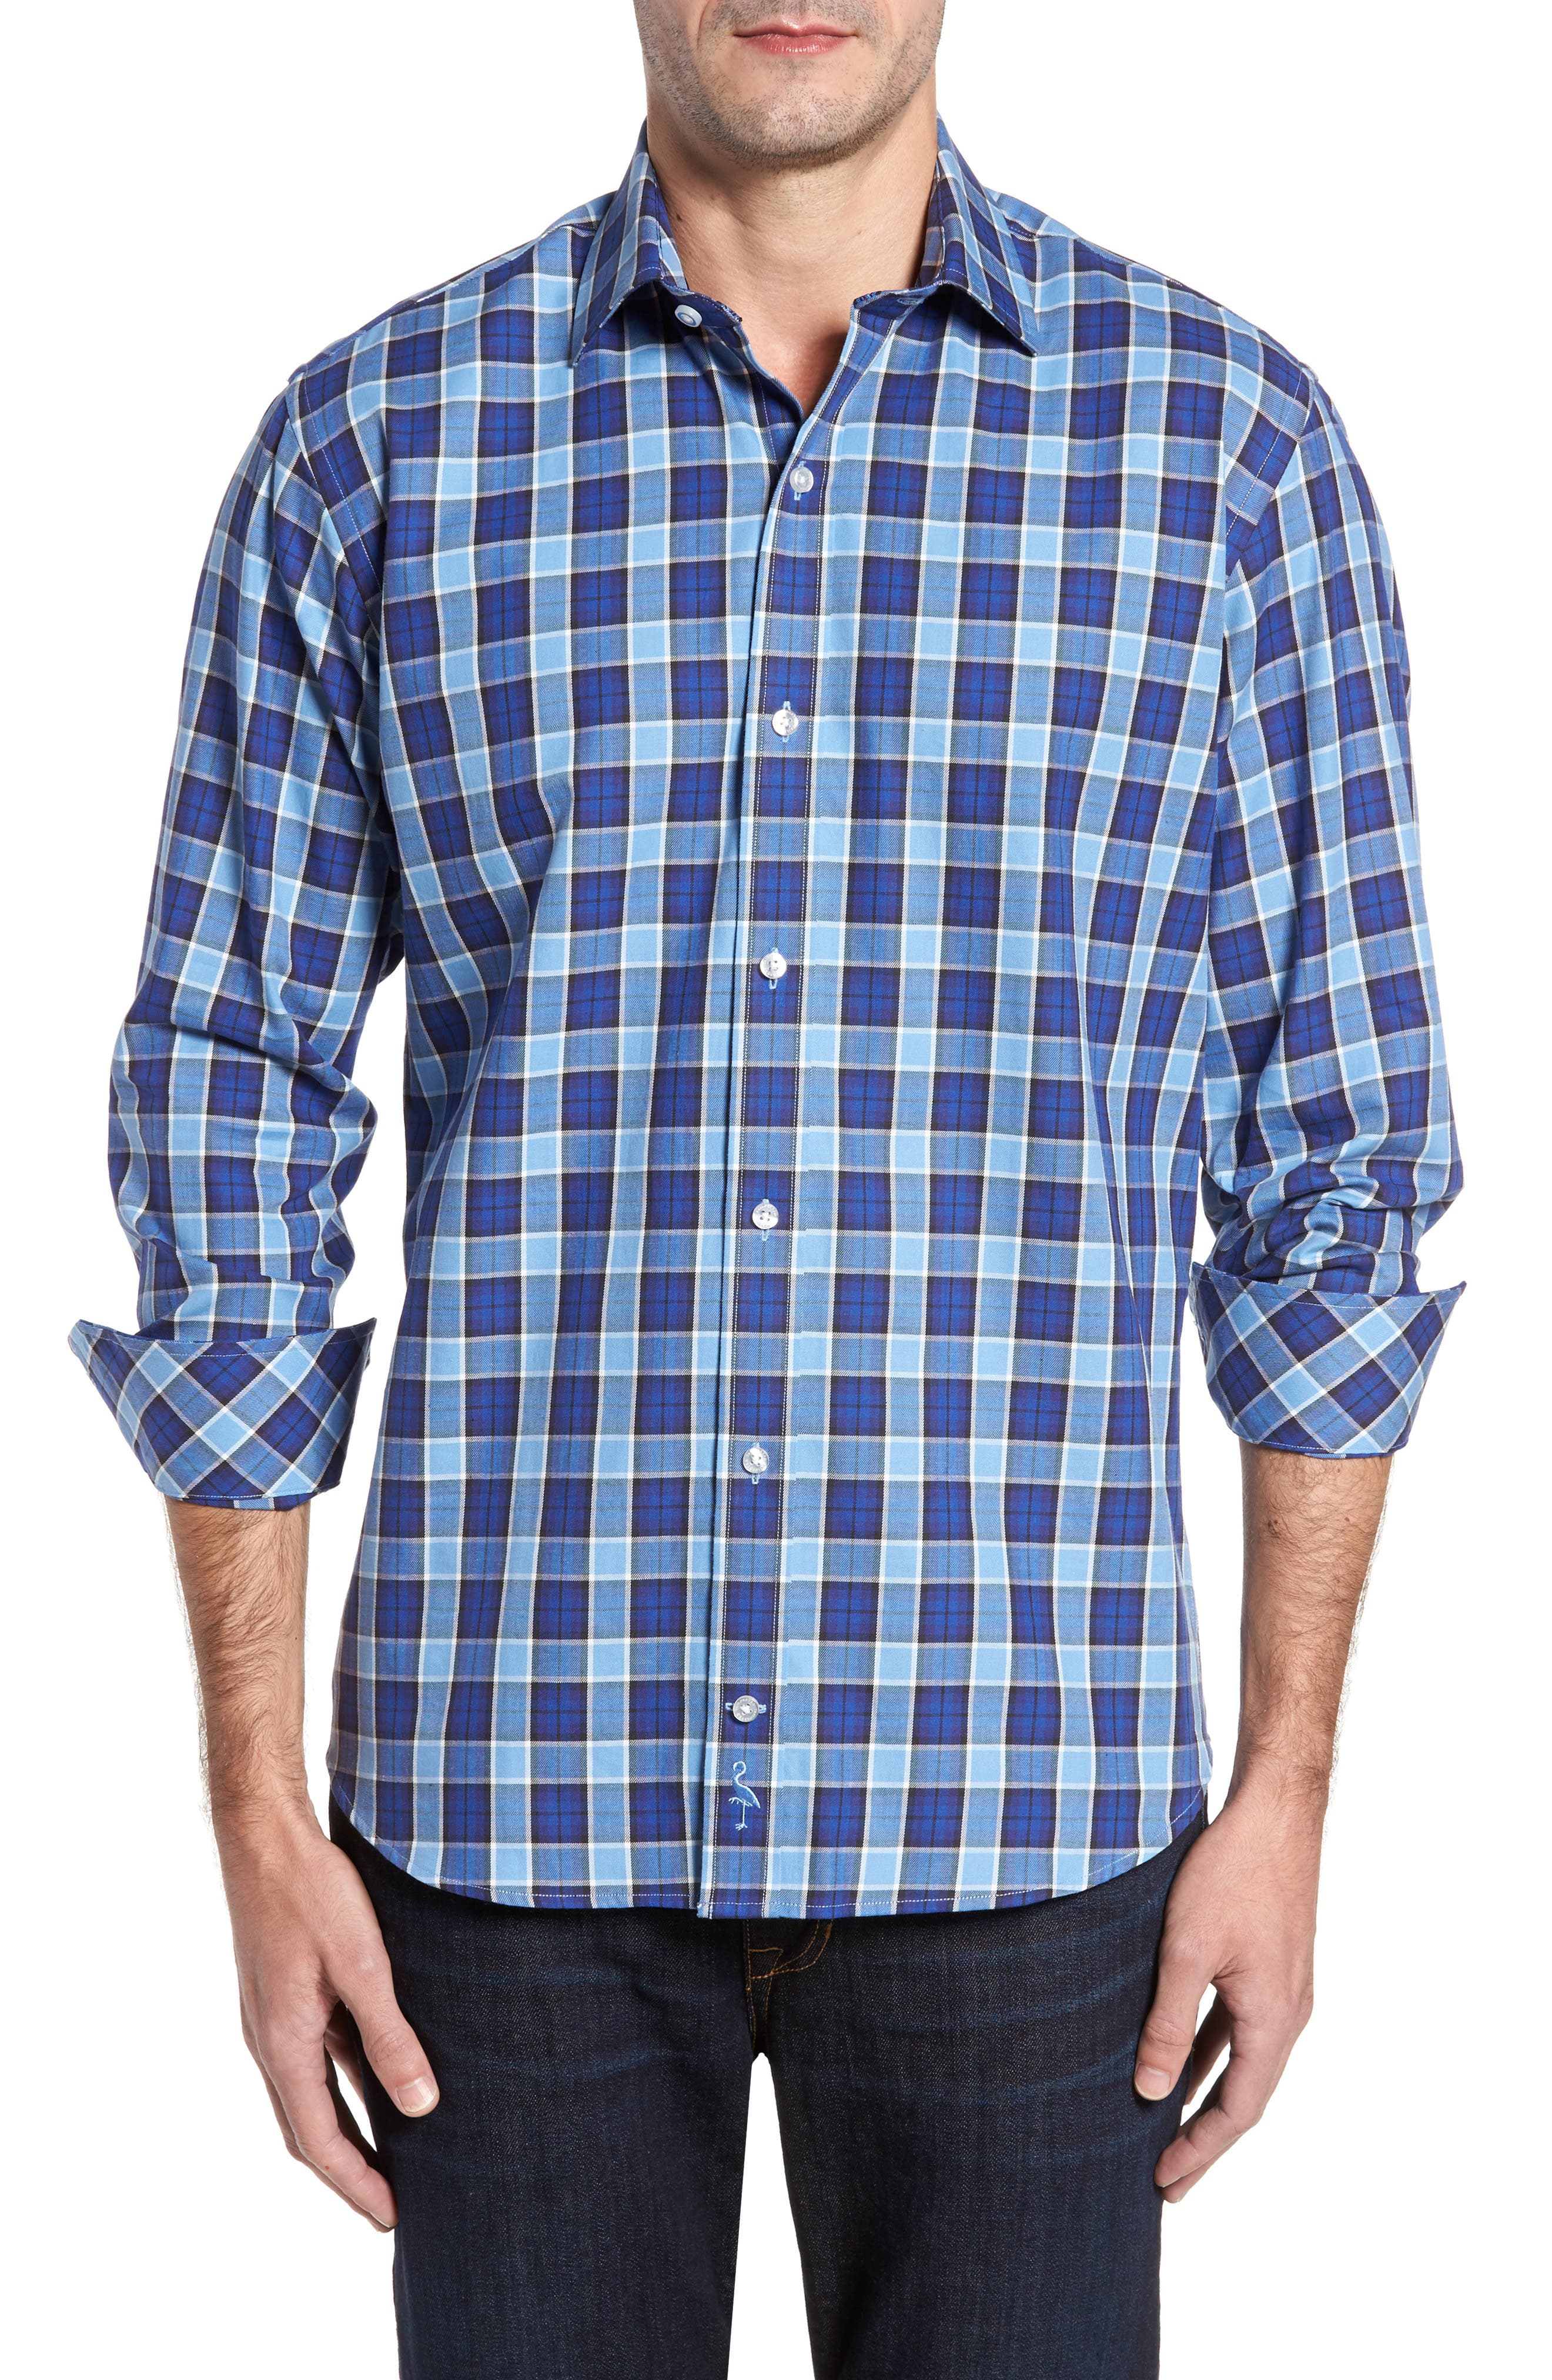 Main Image - TailorByrd Brownsville Windowpane Check Twill Sport Shirt